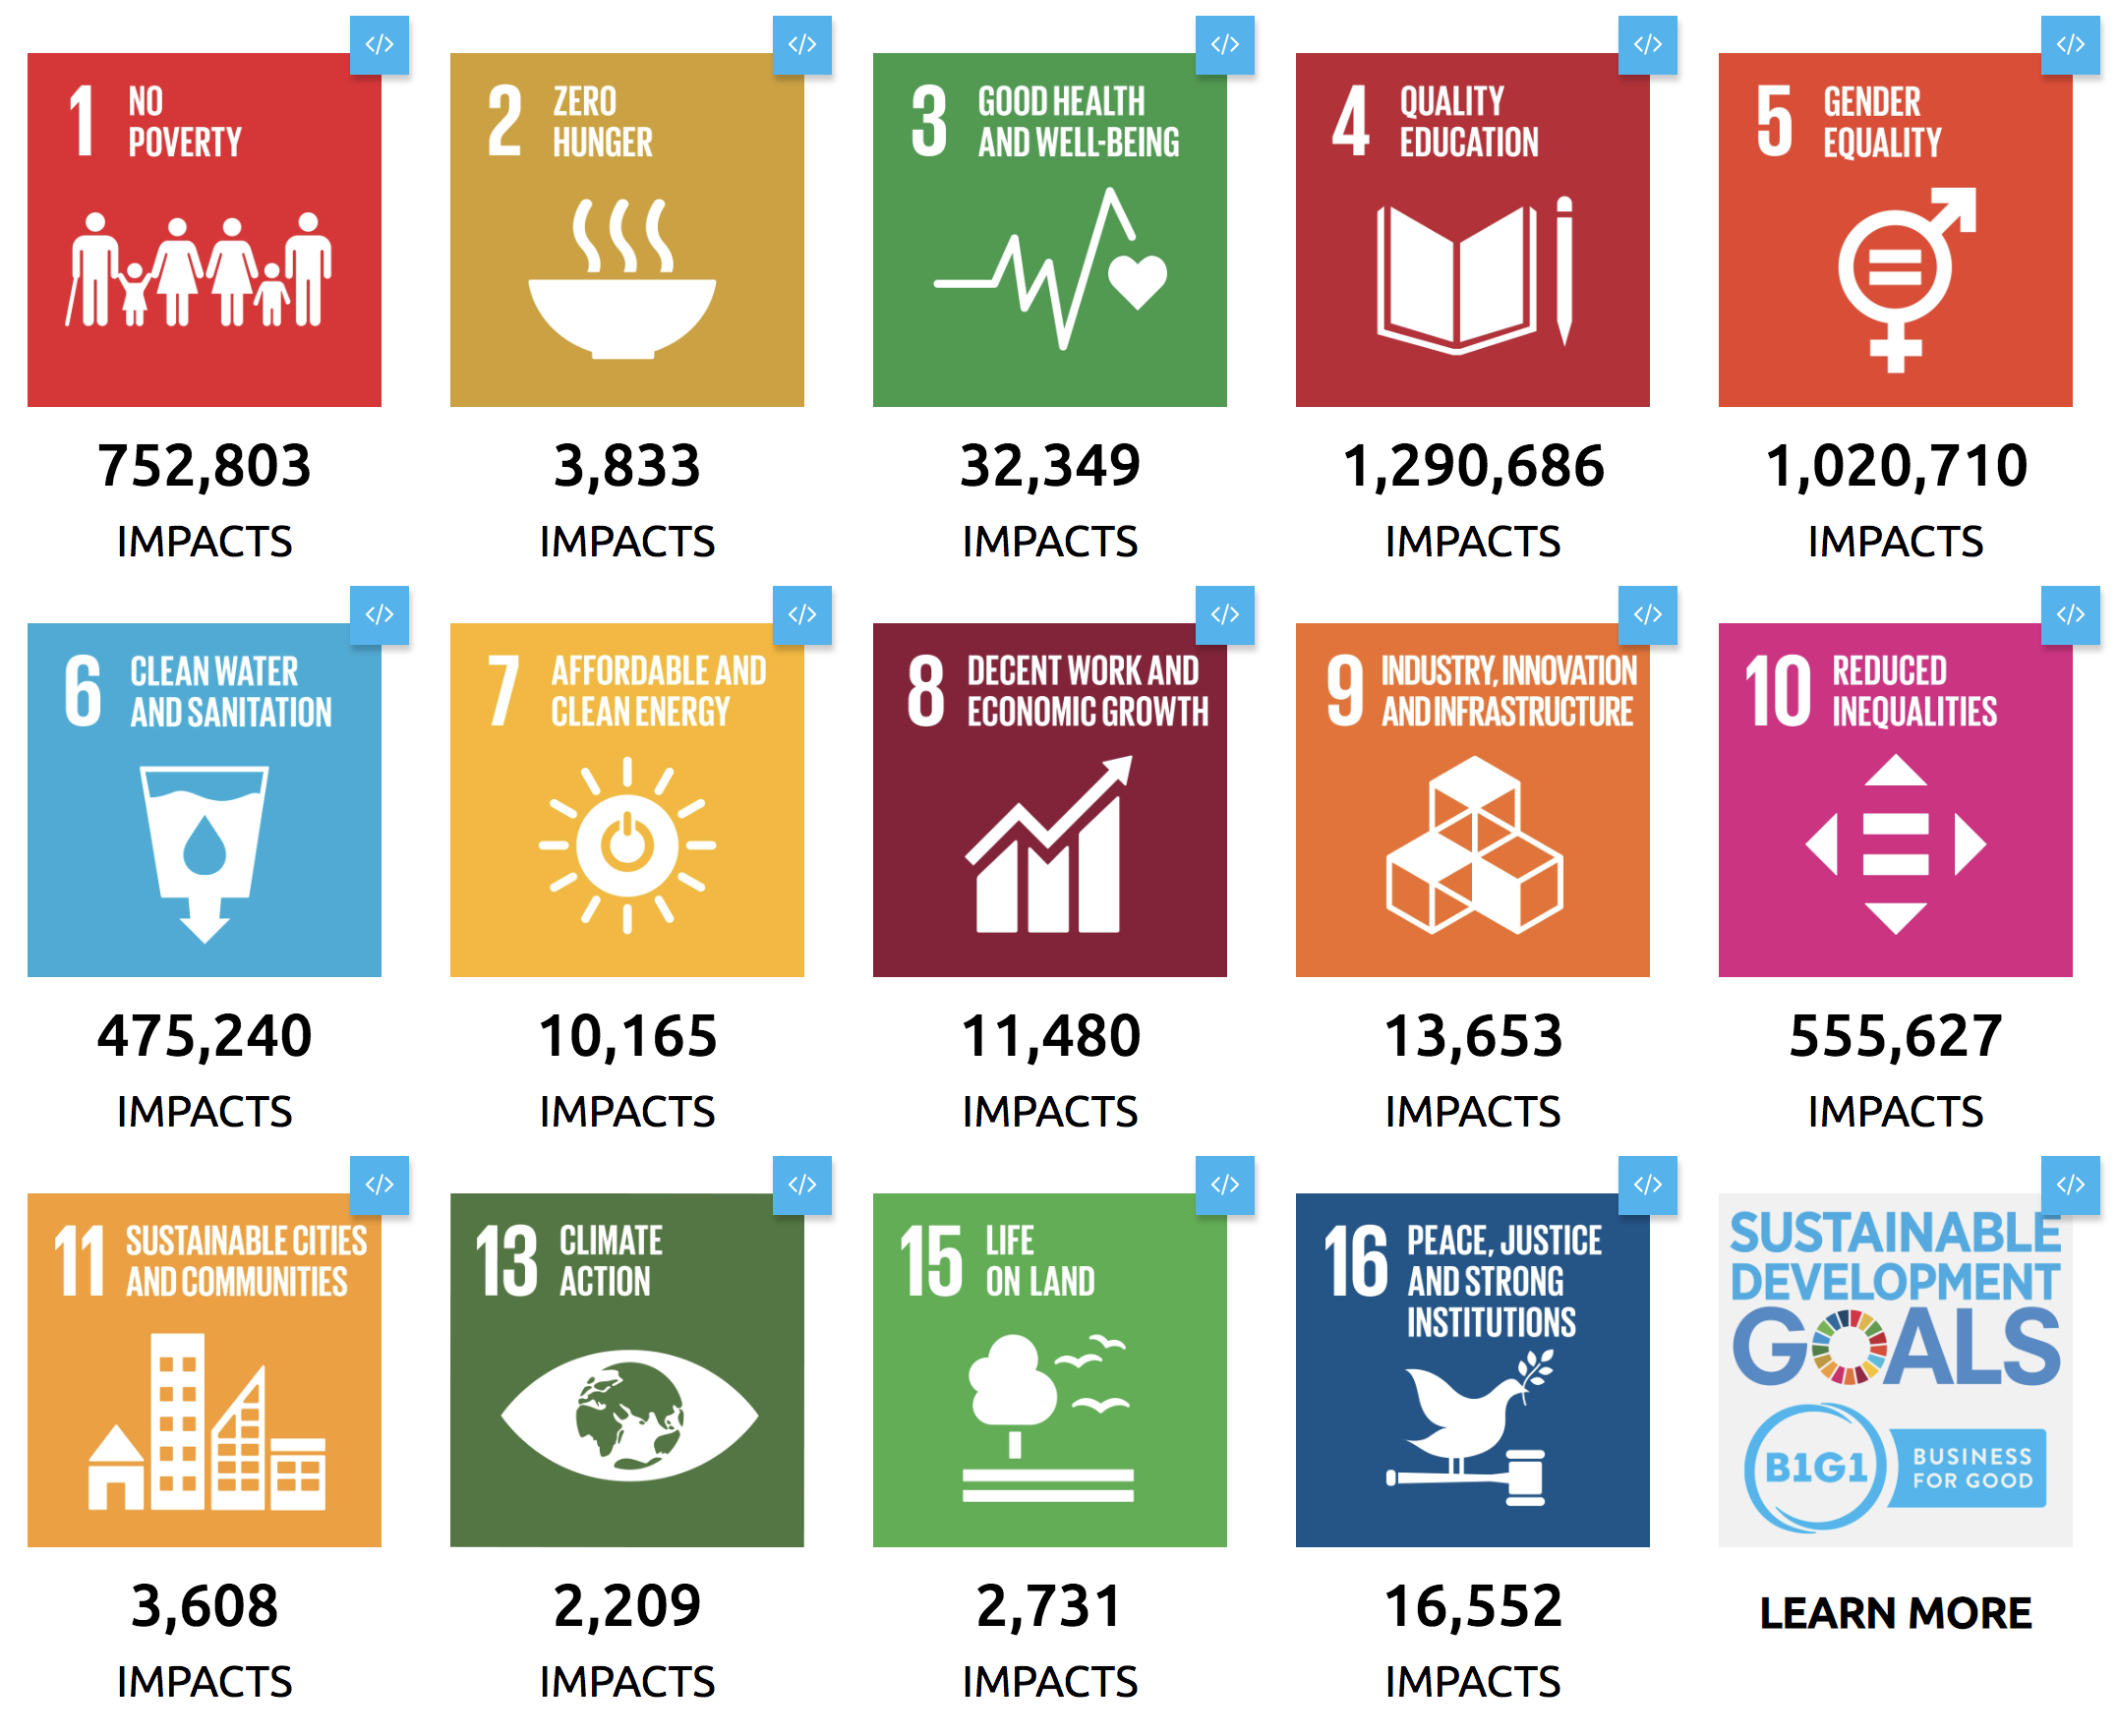 Sustainable Development Goals widget